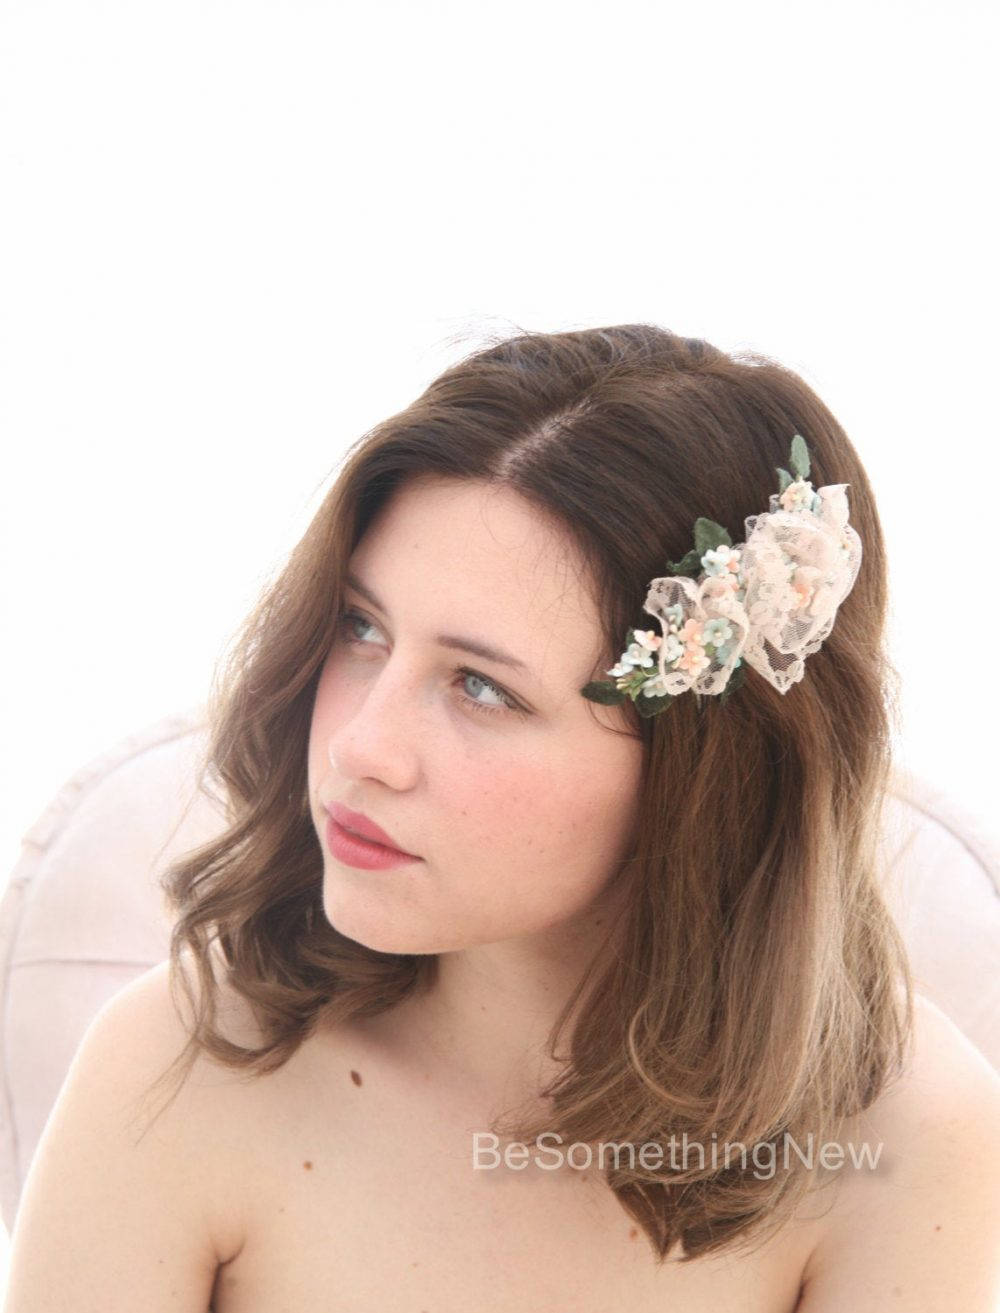 Sale Wedding Flower Hair Comb Of Vintage Flowers & Lace, Bridal Headpiece, Blush Pink Clip